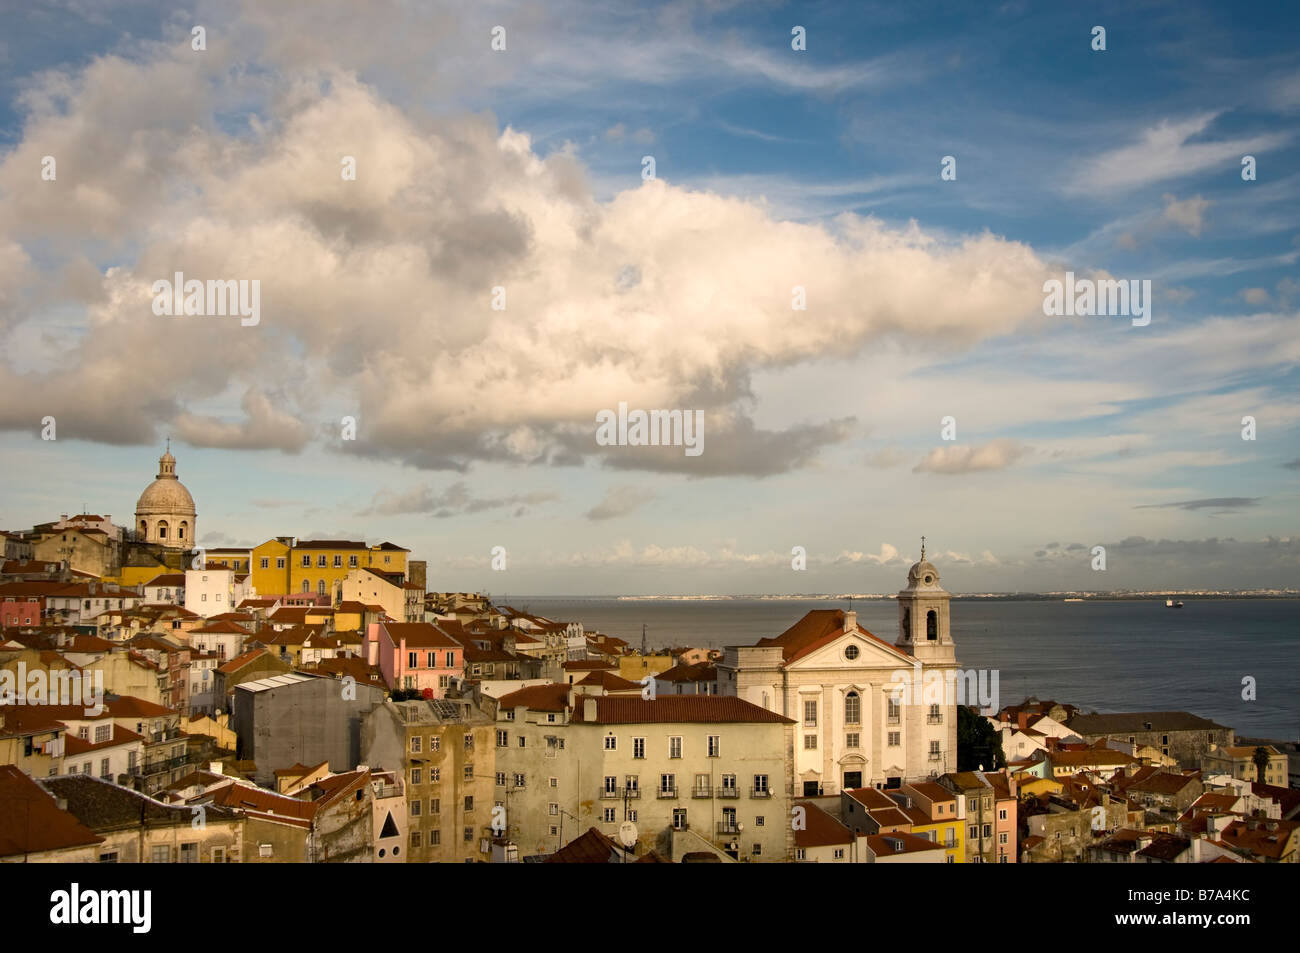 Lisbon and the Church of San Miguel from the viewpoint of St. Lucia in the Alfama - Stock Image